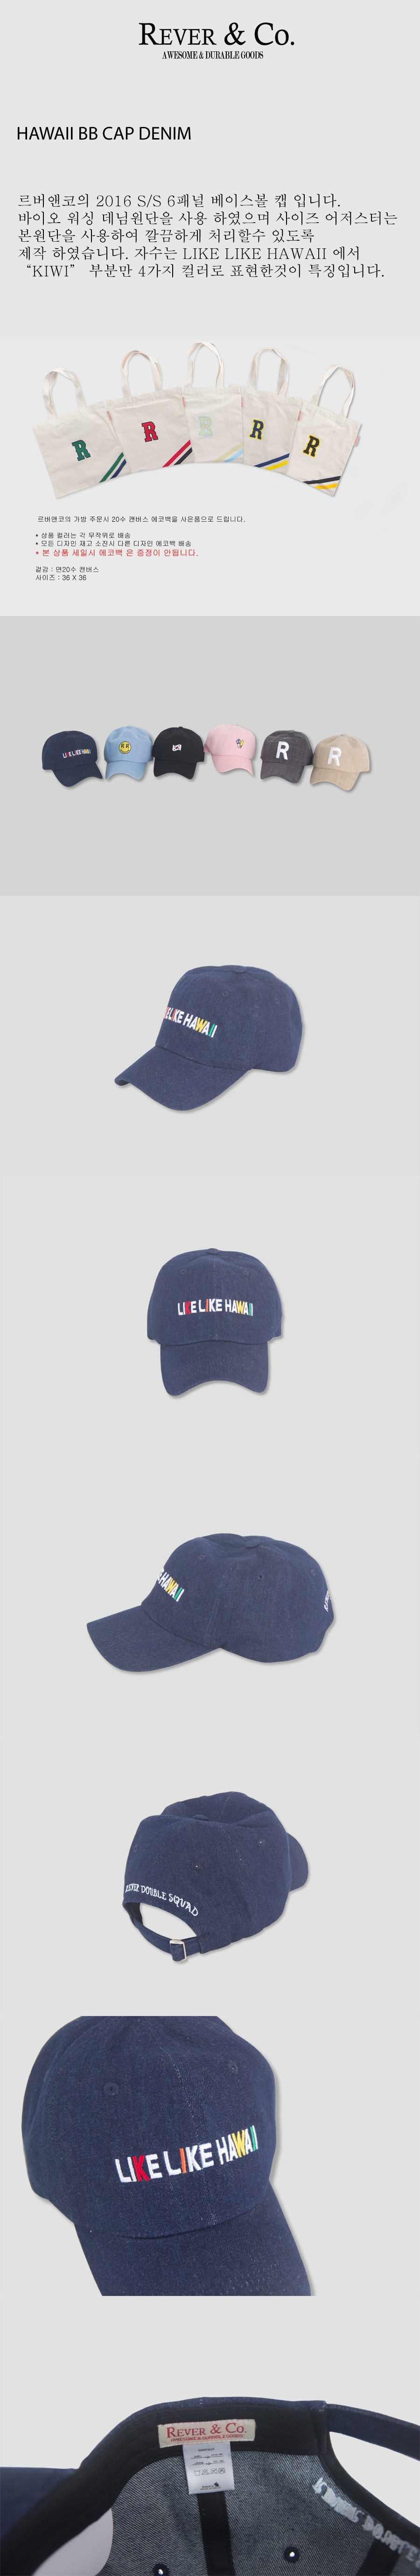 르버앤코(REVER&CO) HAWAII BB CAP DENIM